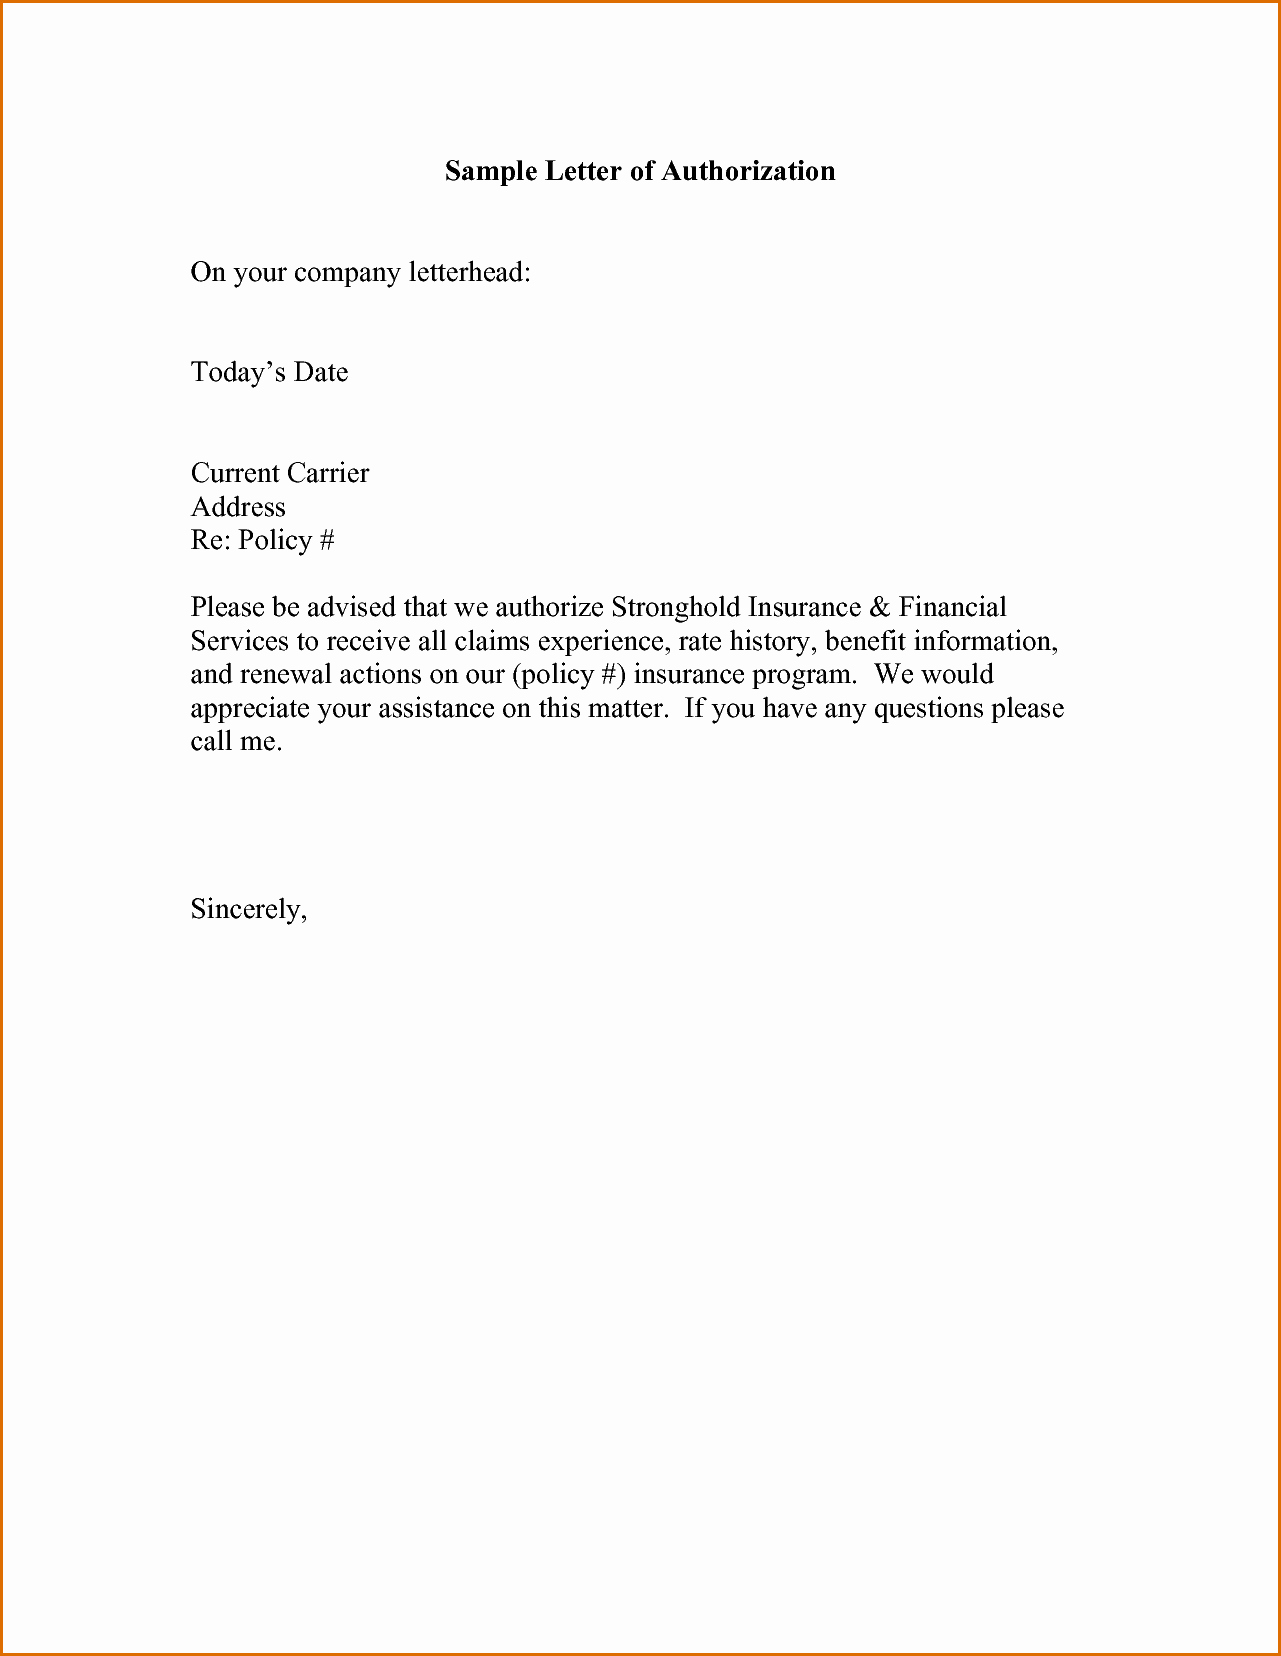 Manufacturers Representative Agreements Best Of 9 Authorization Sample Letters